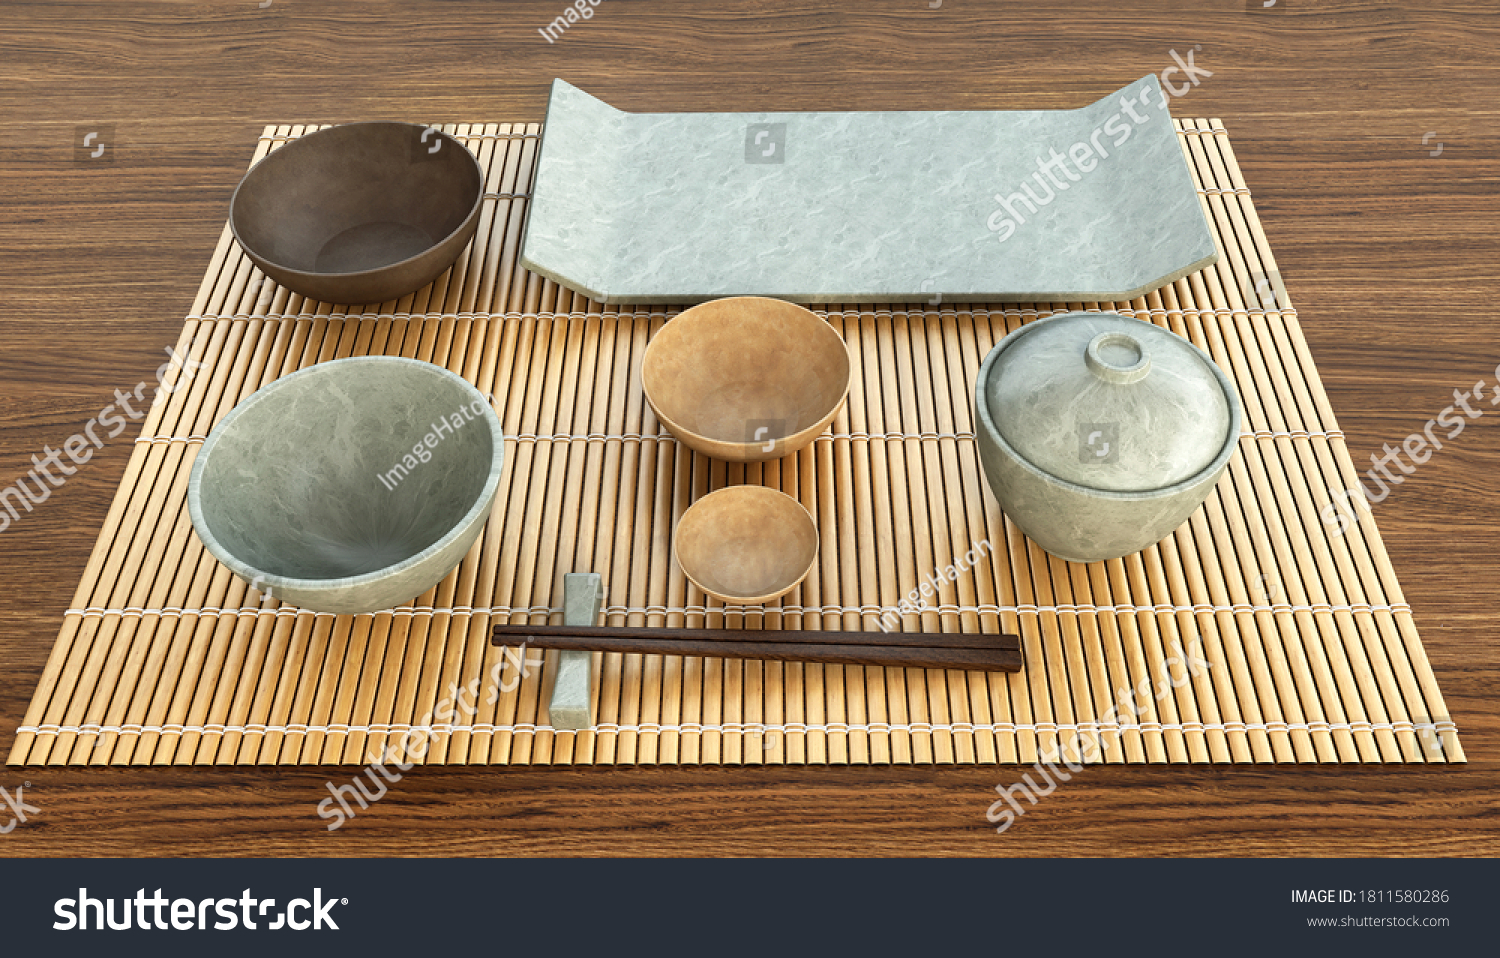 stock-photo-japanese-table-setting-conce